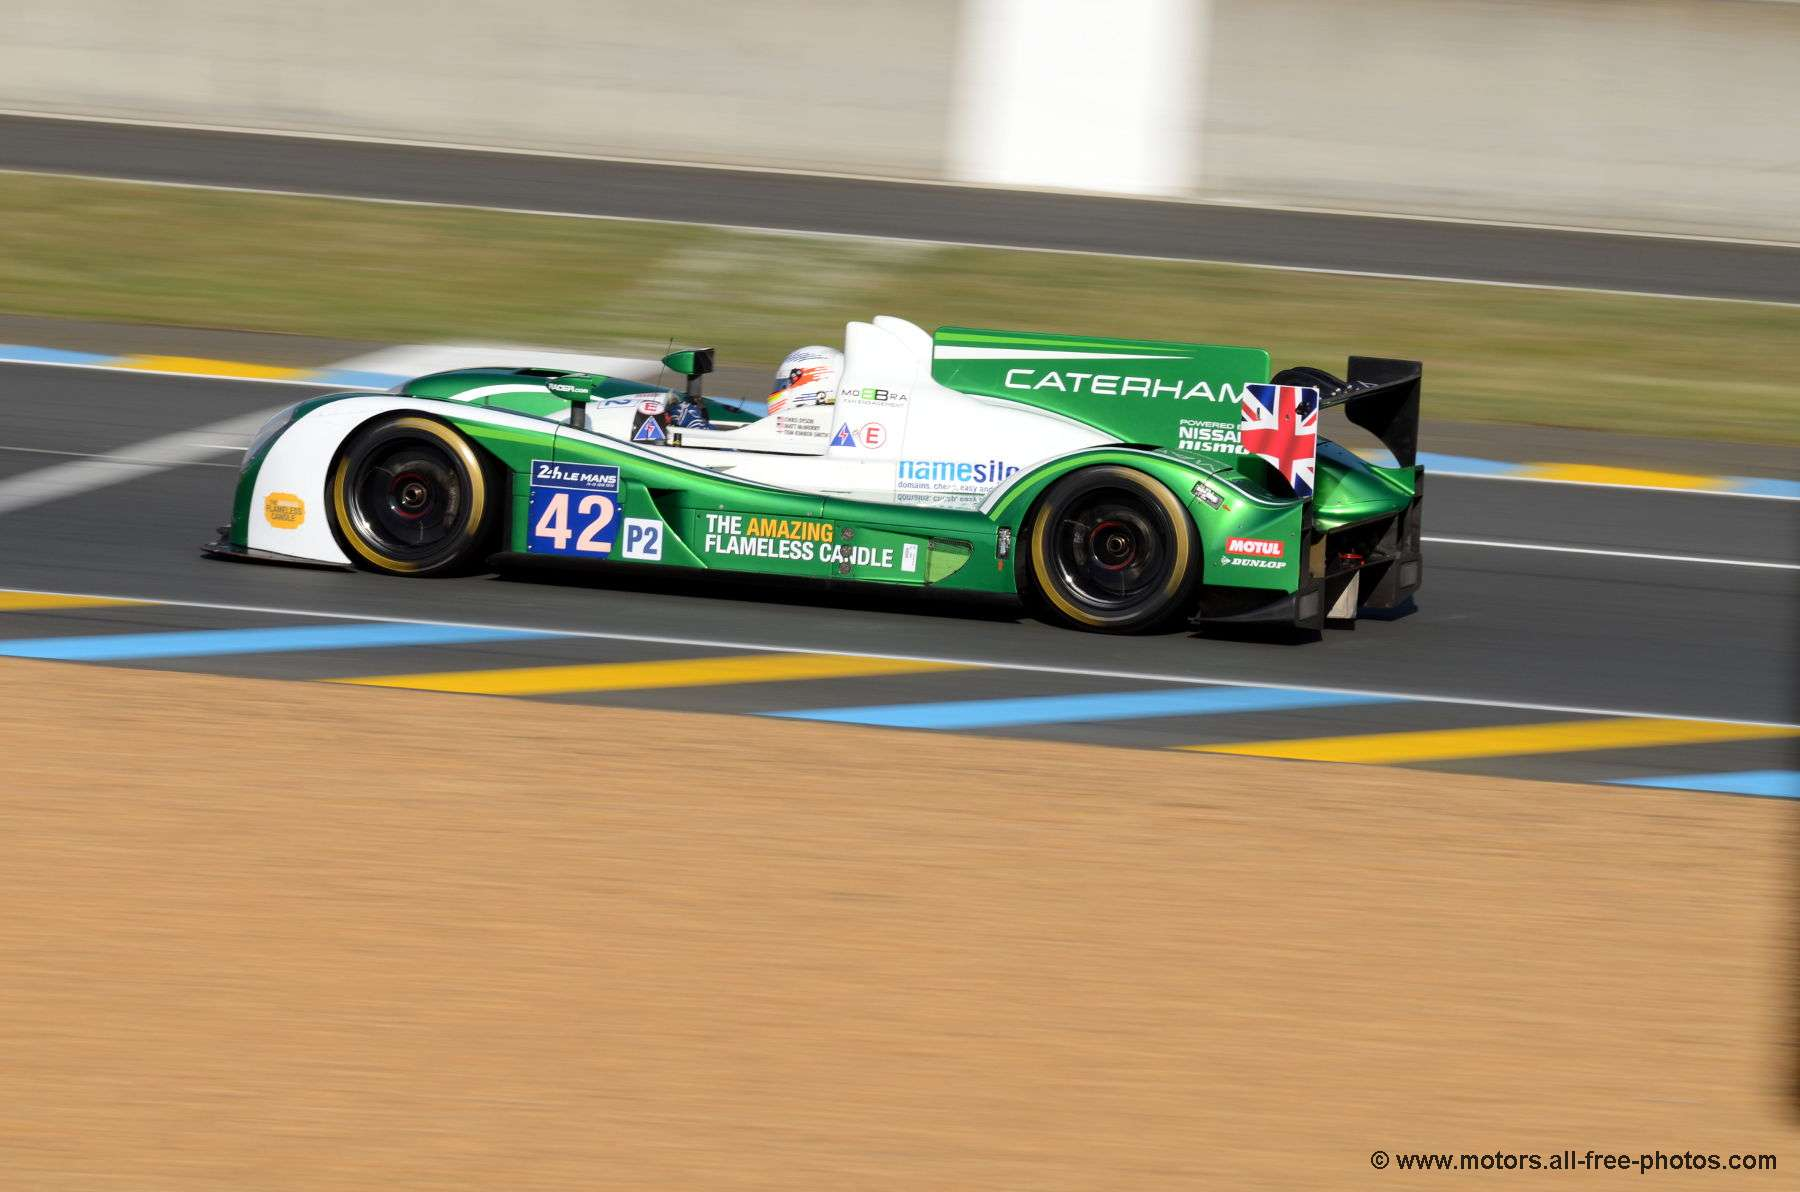 Zytec Z11SN-Nissan - Team Caterham Racing